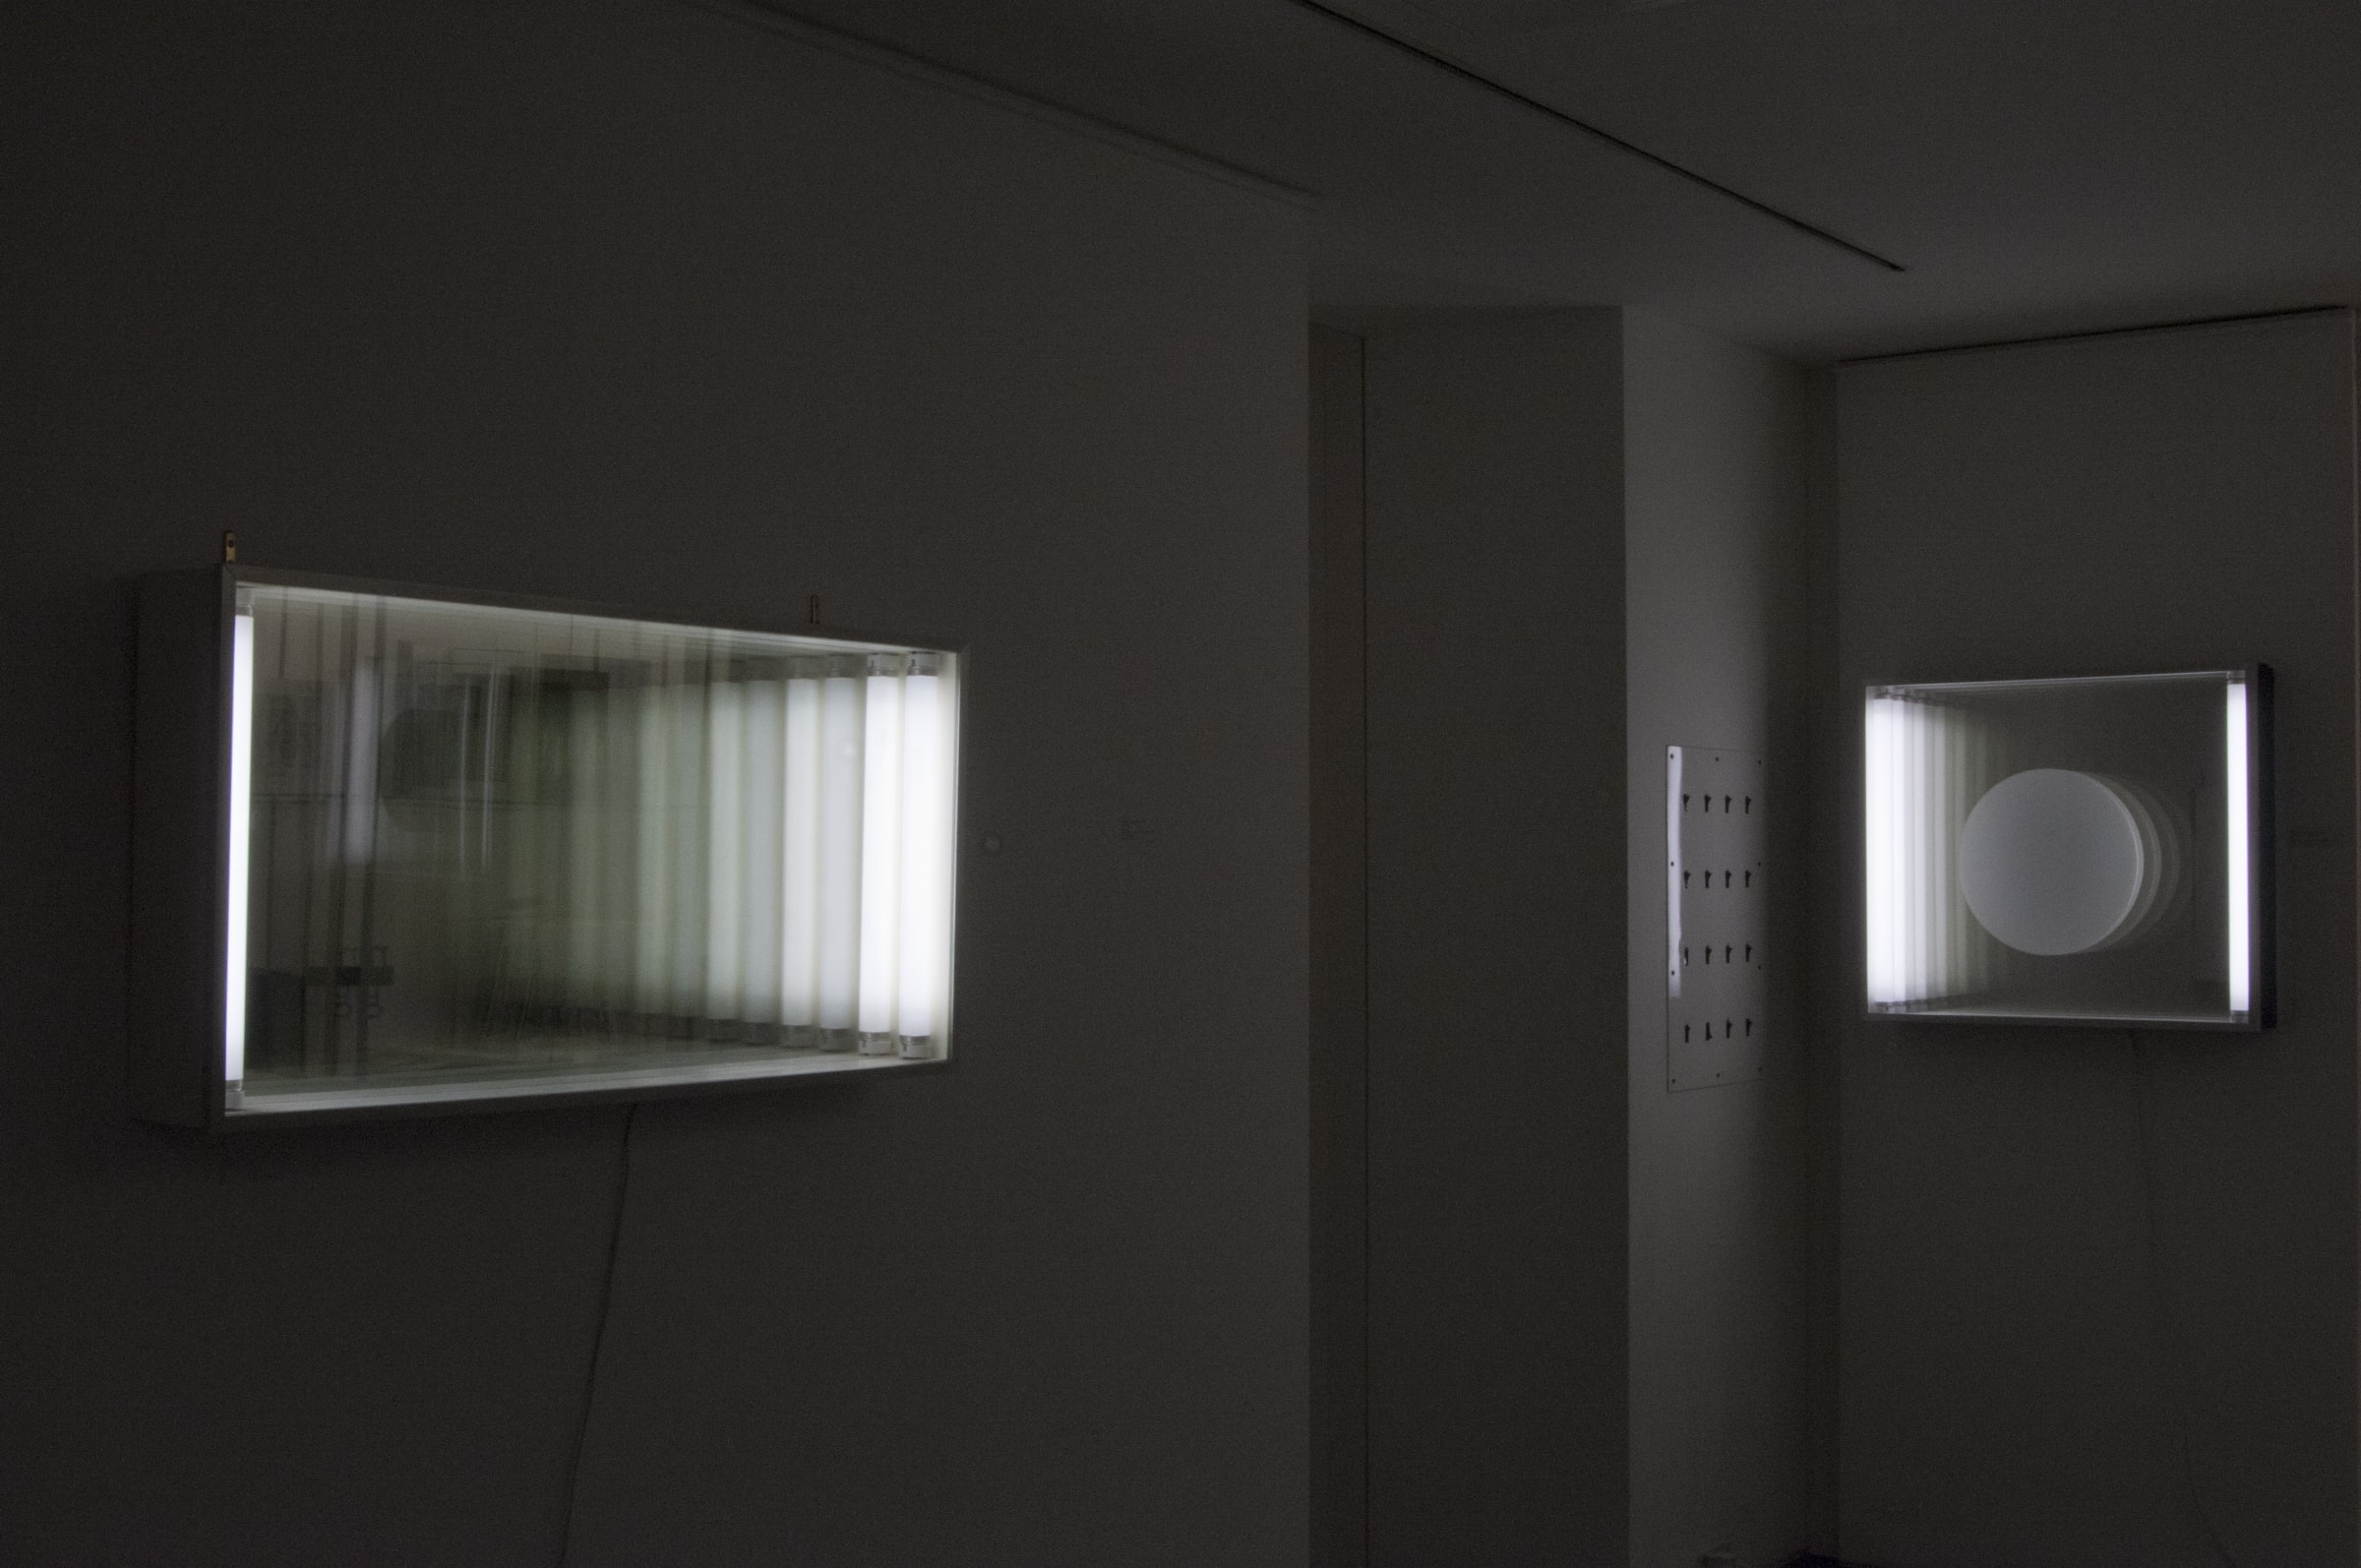 """<span class=""""link fancybox-details-link""""><a href=""""/exhibitions/75/works/image_standalone232/"""">View Detail Page</a></span><p>CHRISTIAN MEGERT   A NEW SPACE   11 JAN - 24 FEB 2012  Installation View</p>"""